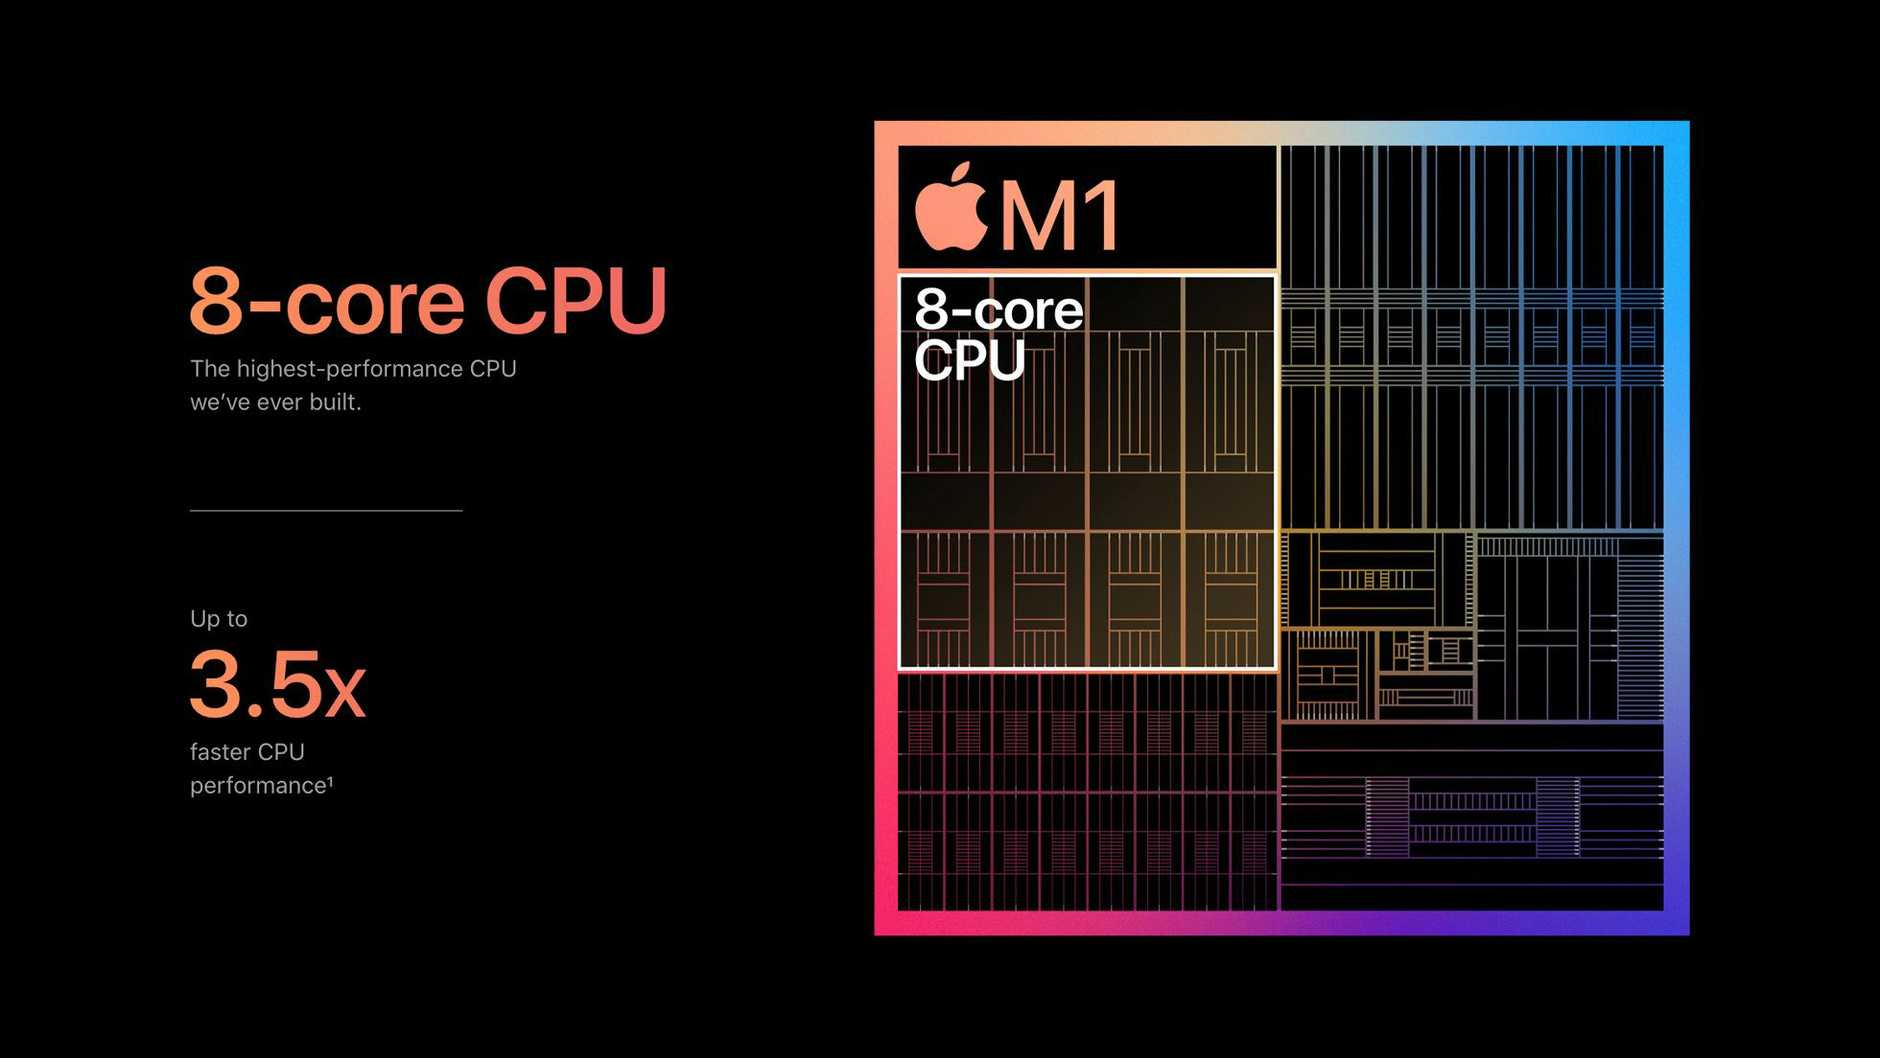 The M1 chips is available in the new 13-inch MacBook Pro, as well as a new Mac mini desktop computer and MacBook Air.